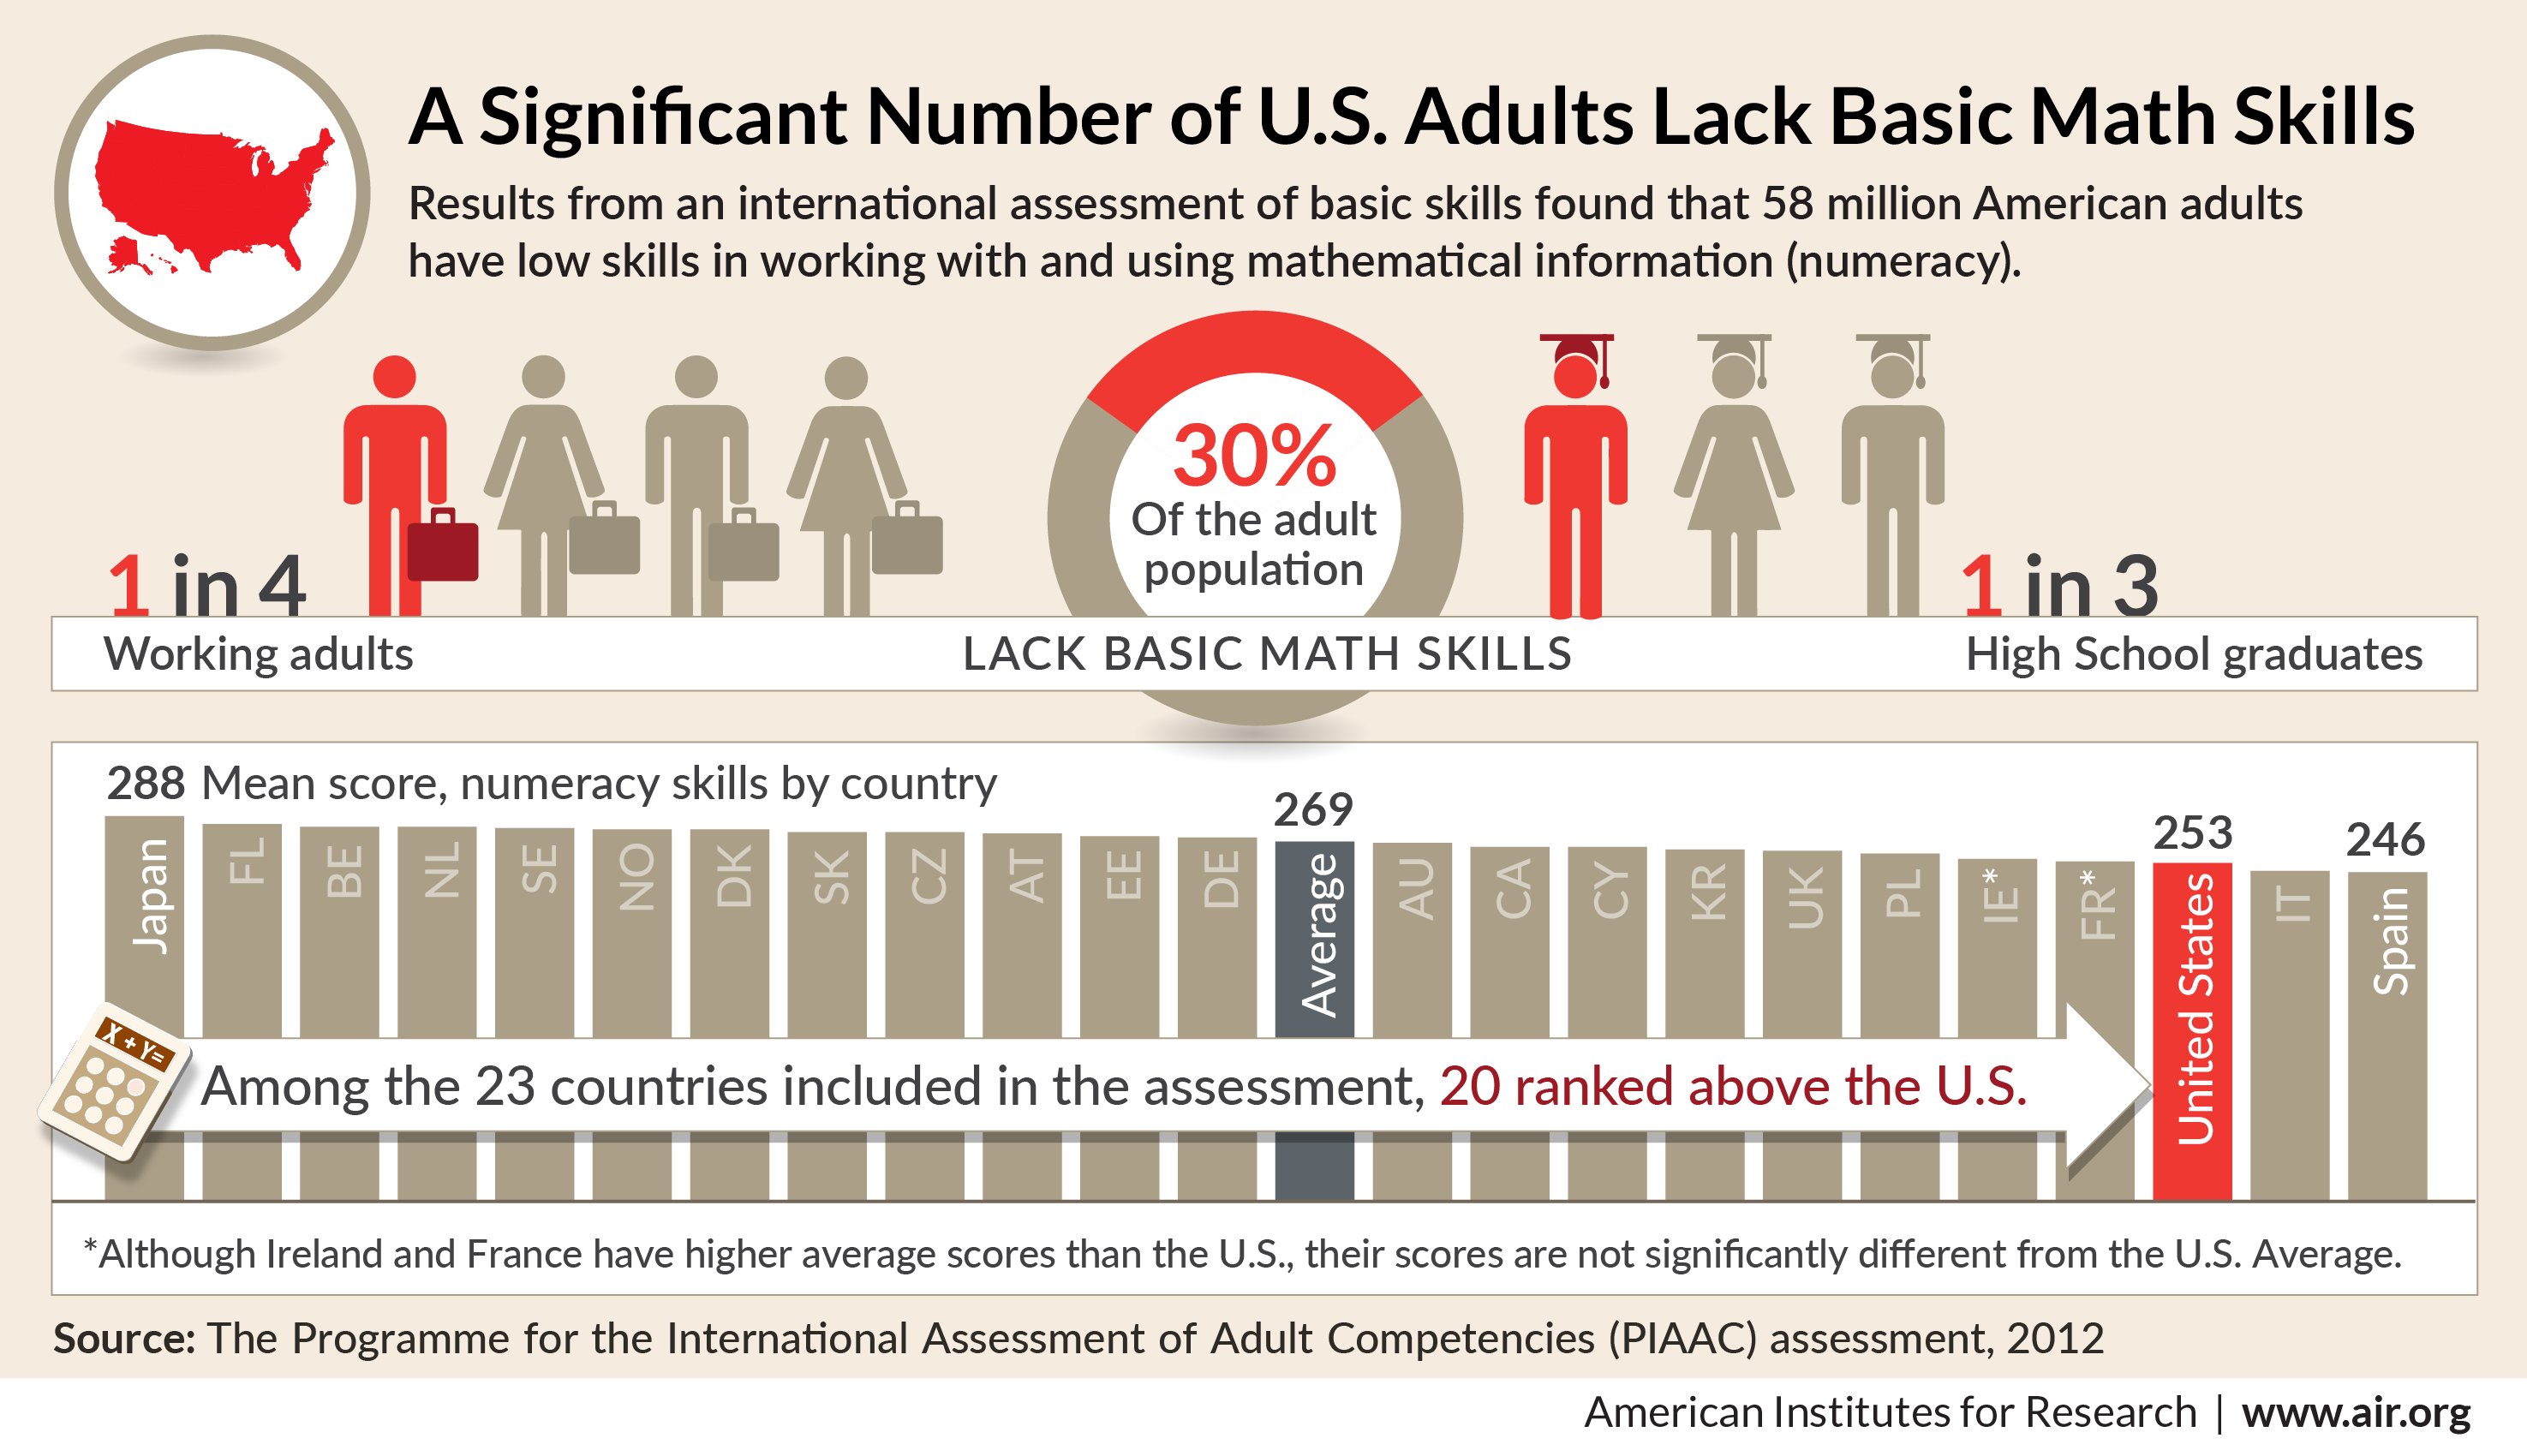 A Significant Number of U.S. Adults Lack Basic Math Skills ...